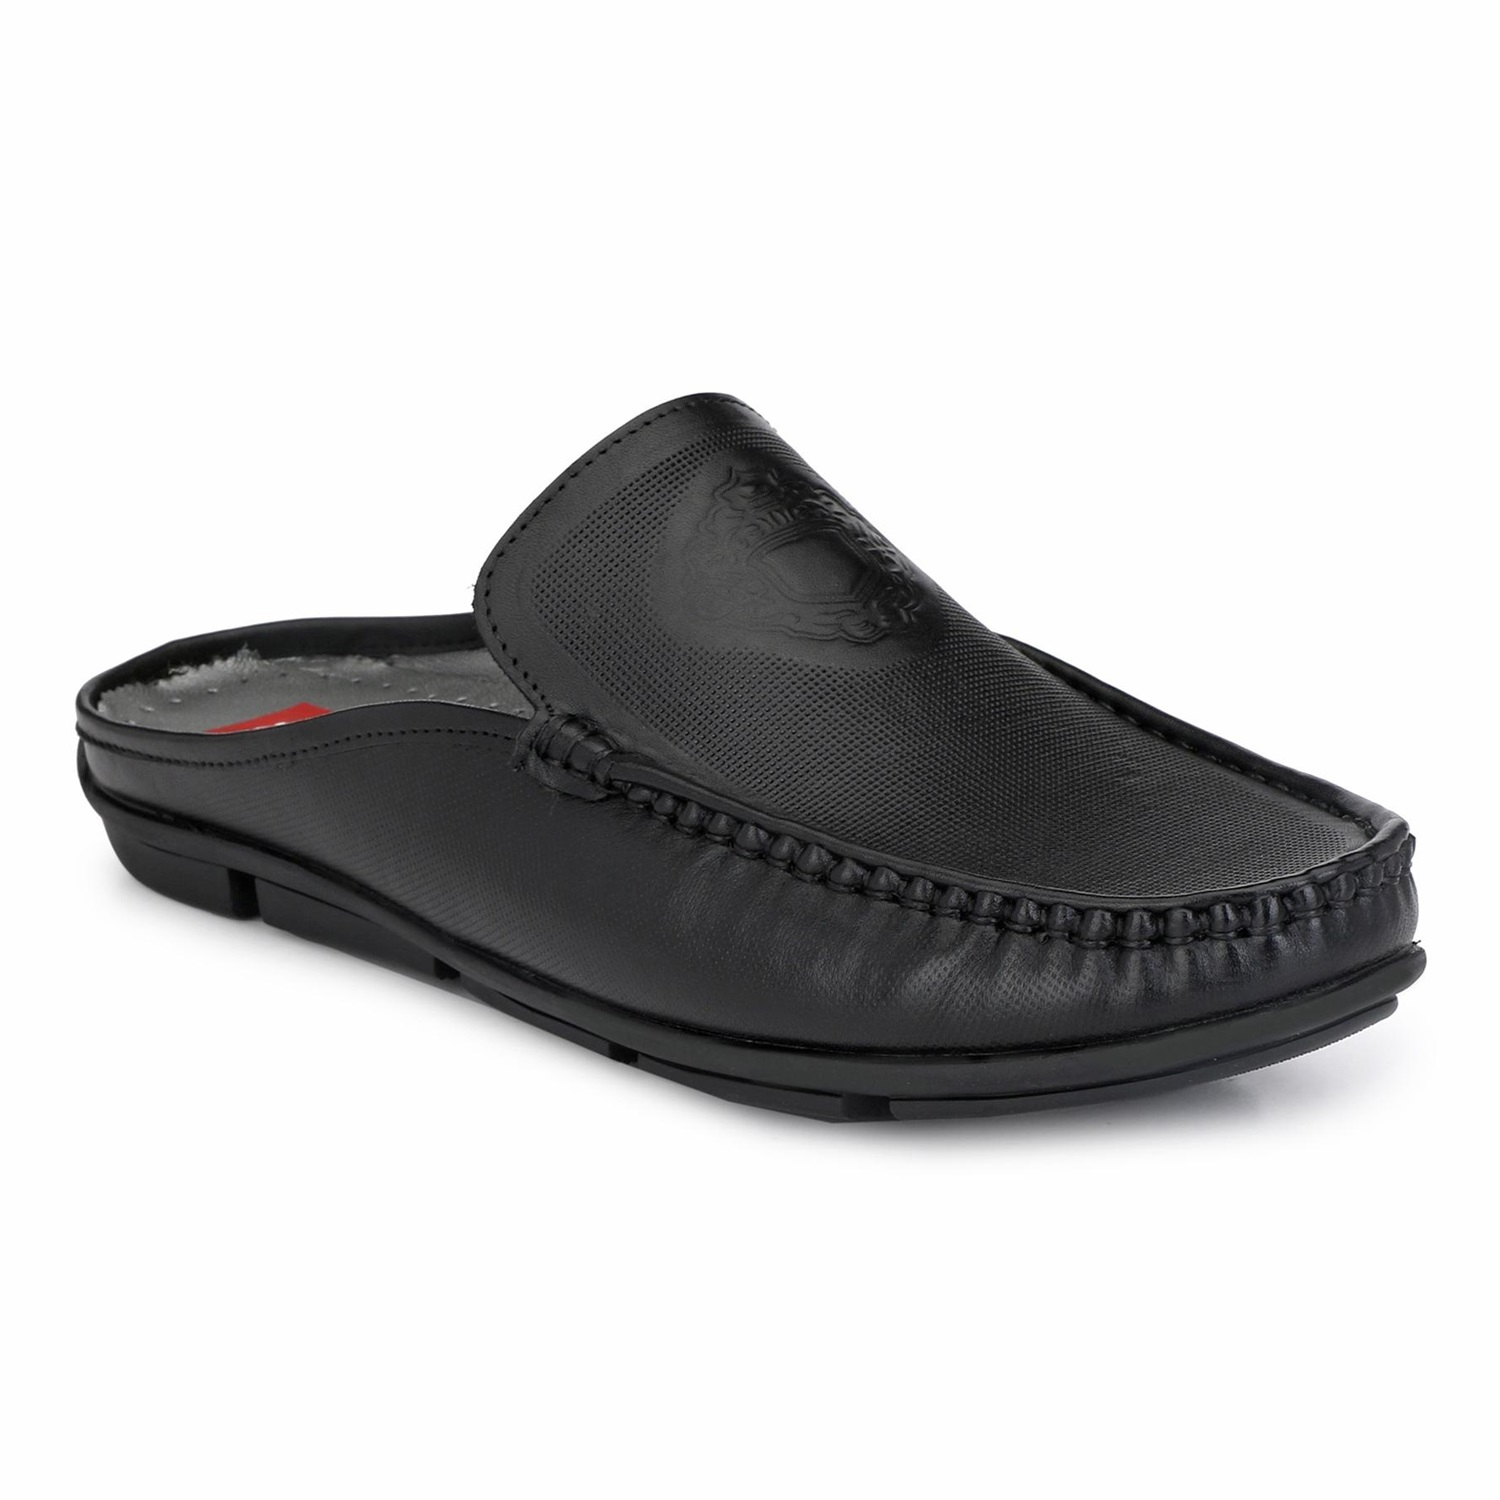 Hitz | Hitz Black Genuine Leather Casual Loafers with Slip-On Fastening